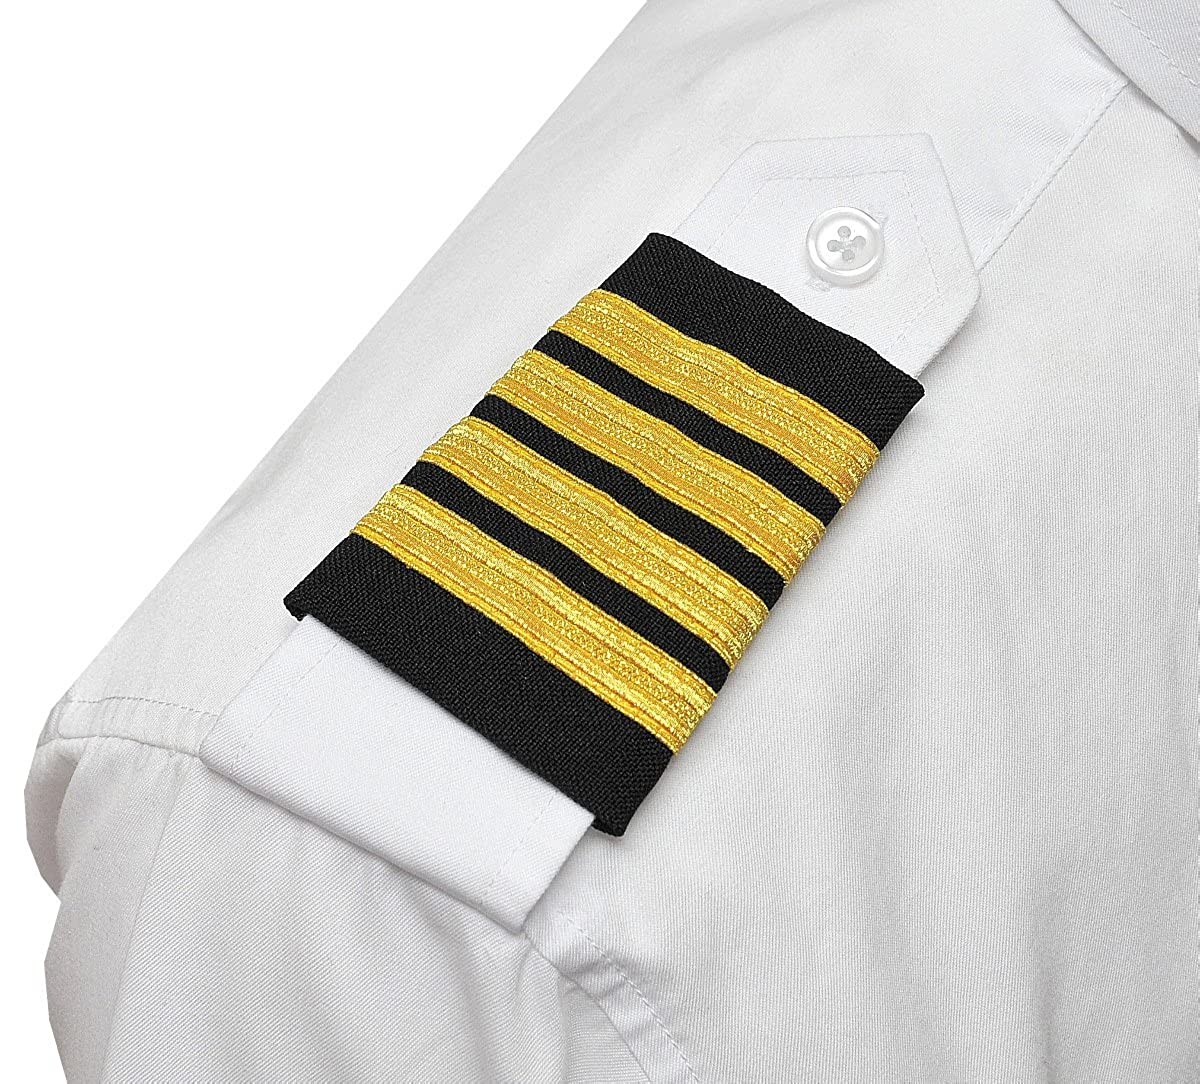 Aero Phoenix Professional Pilot Uniform Epaulets - Four Bars - Captain